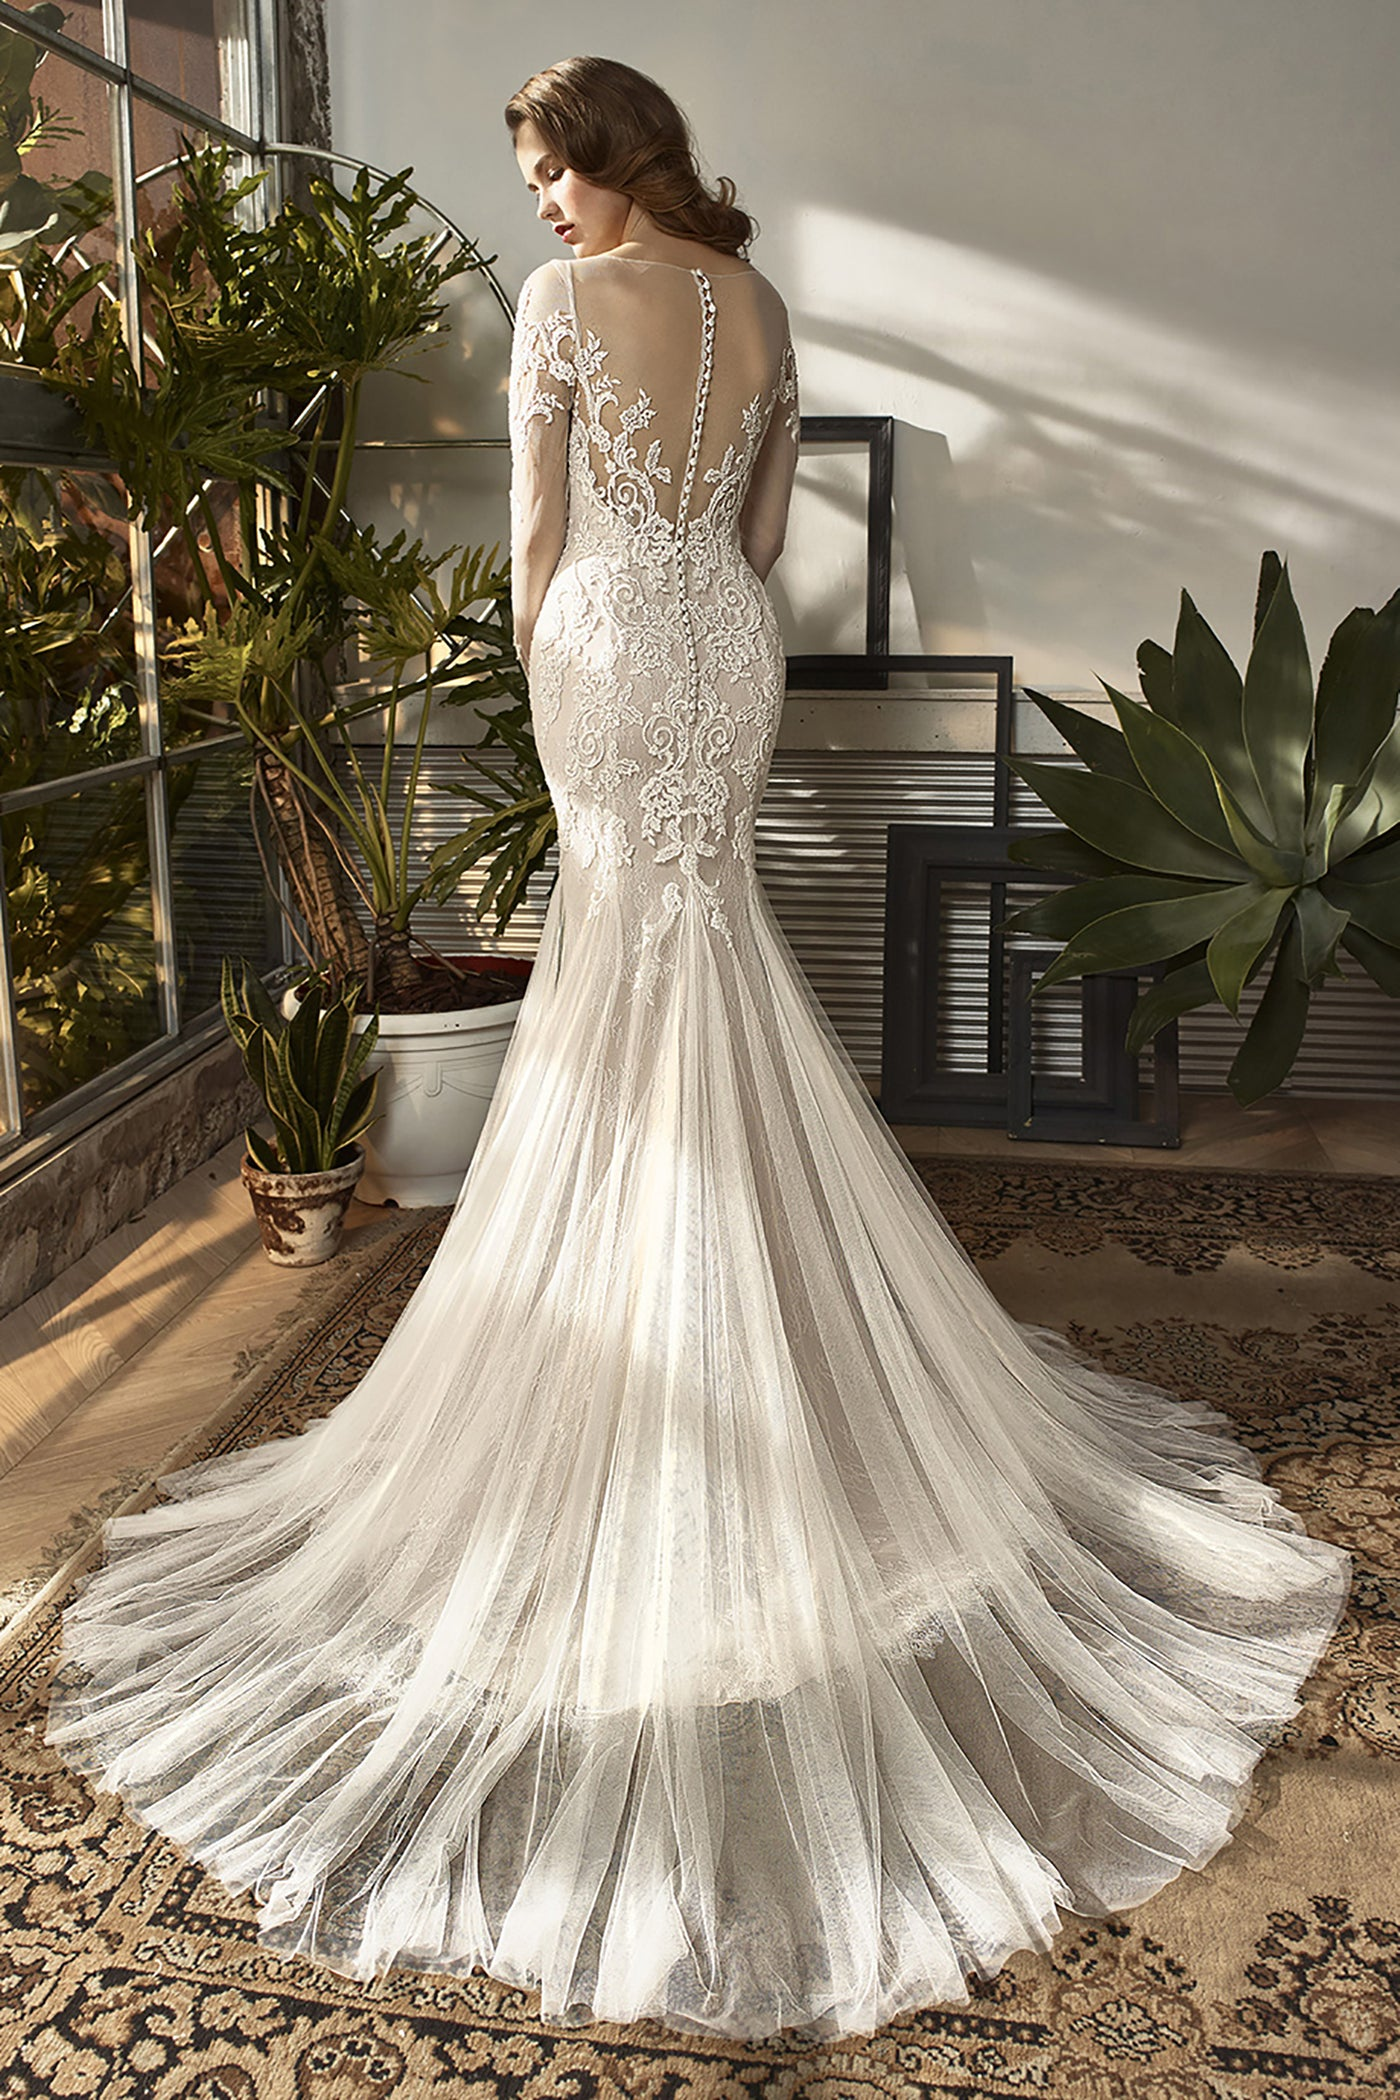 Solstice, Gown, Beautiful by Enzoani - Eternal Bridal